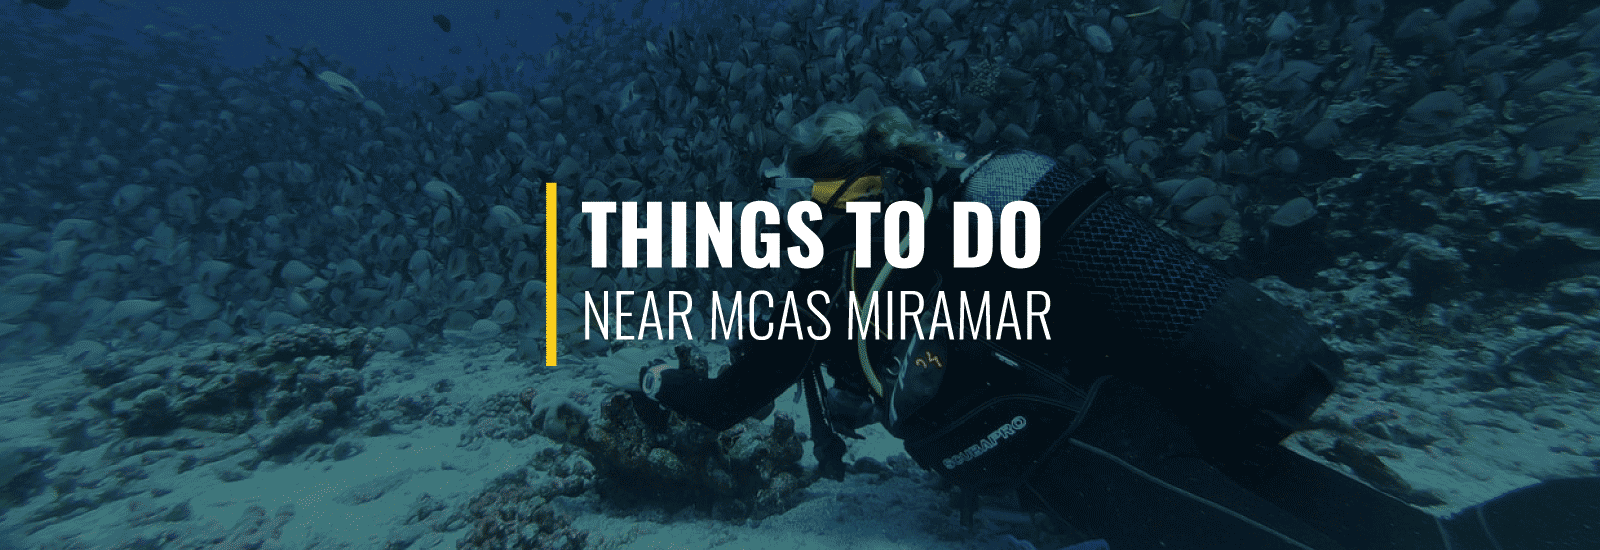 Things To Do MCAS Miramar